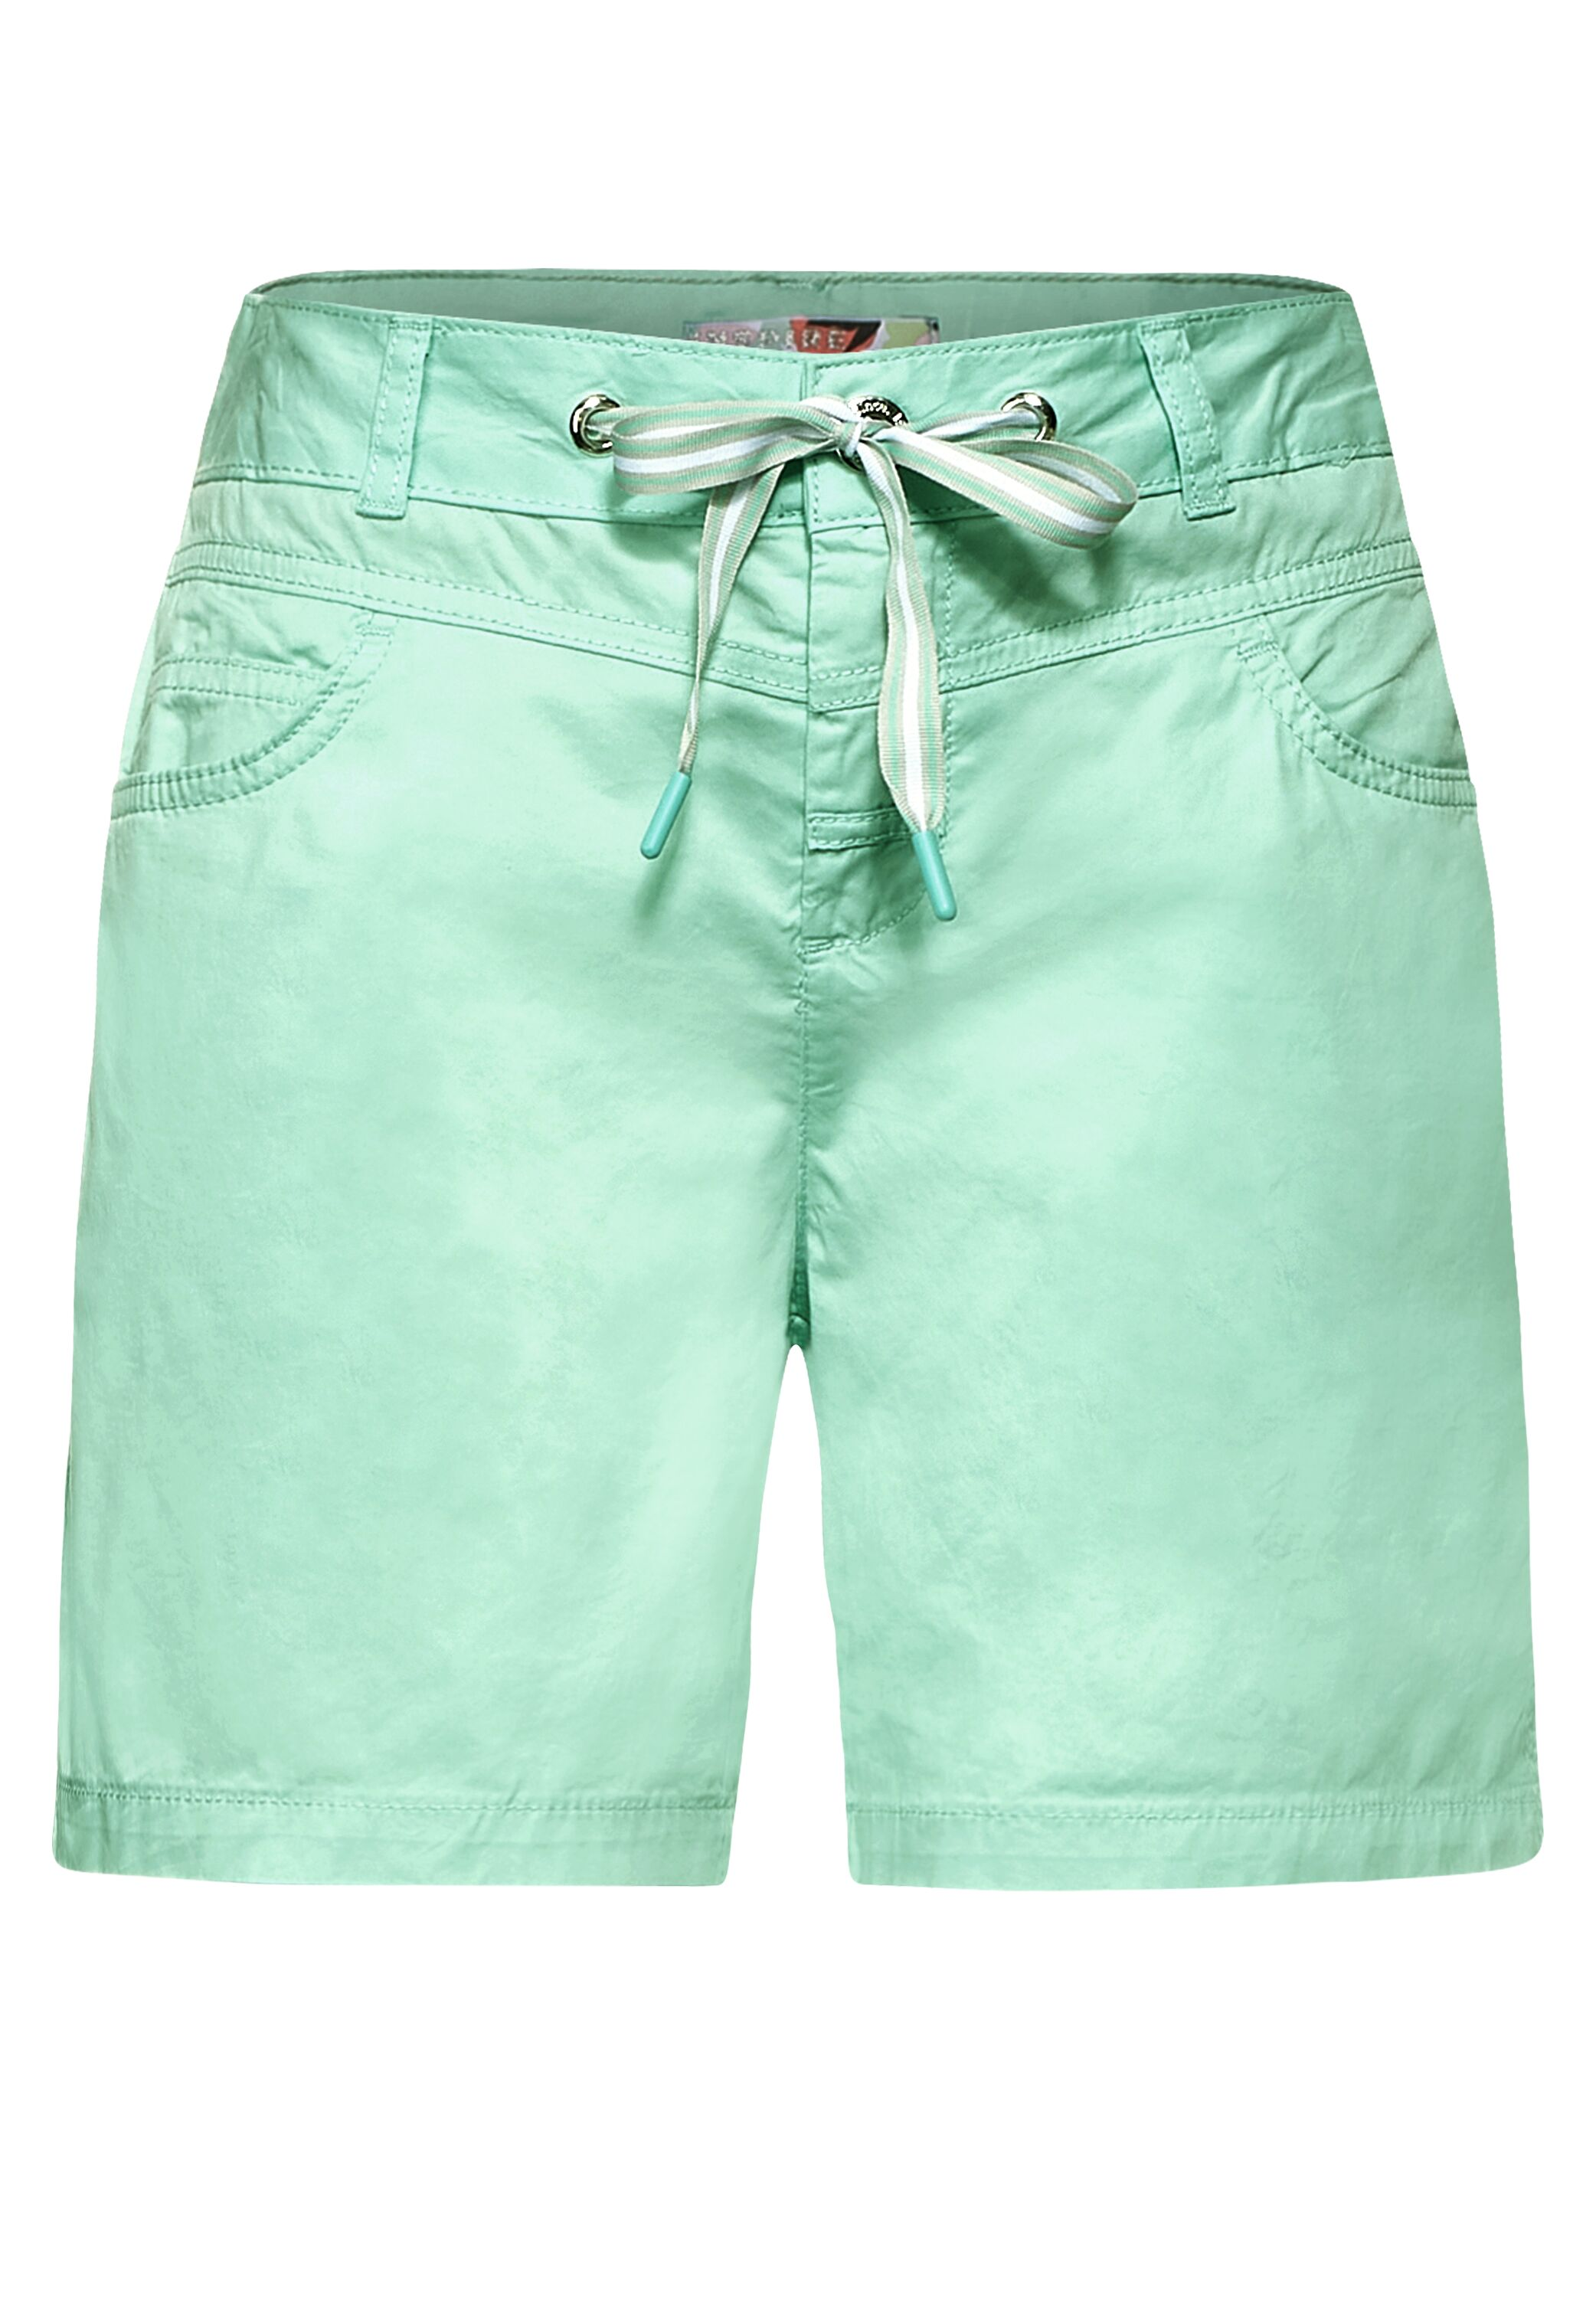 StreetOne Loose Fit Shorts in Unifarbe